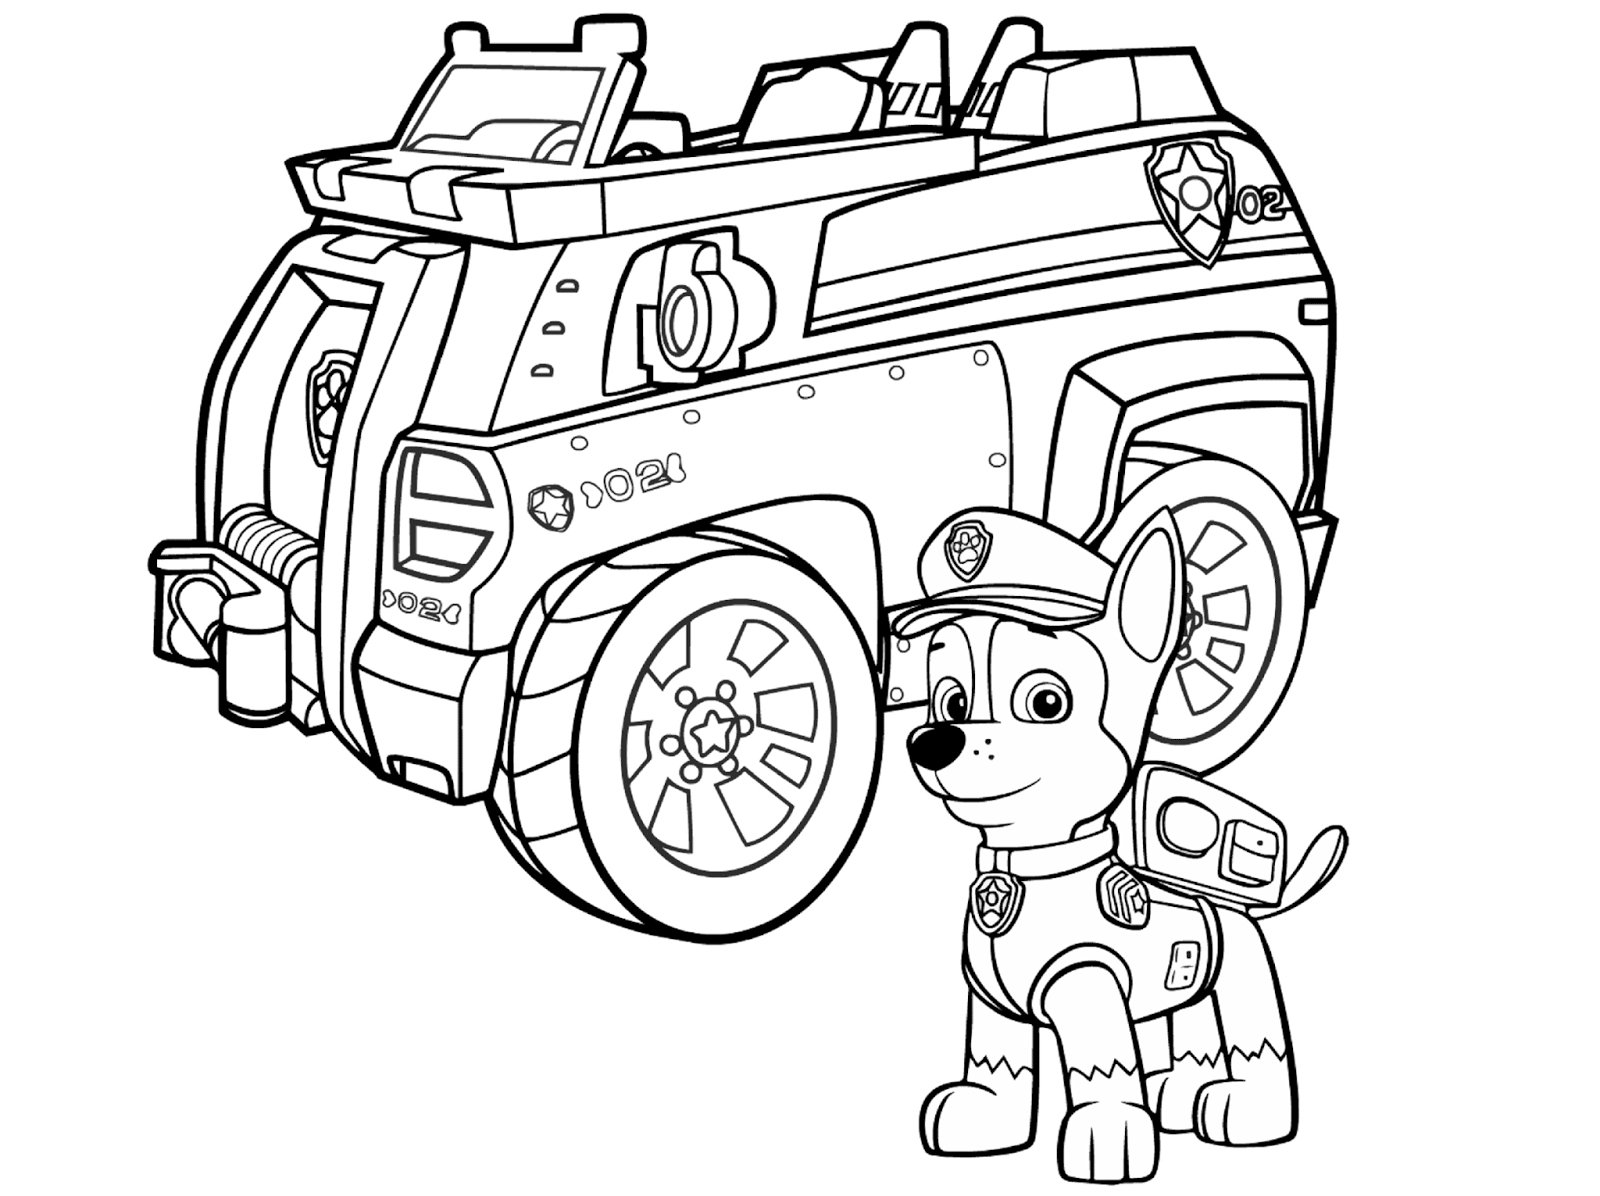 chase paw patrol coloring page - nickelodeon paw patrol chase coloring pages sketch templates